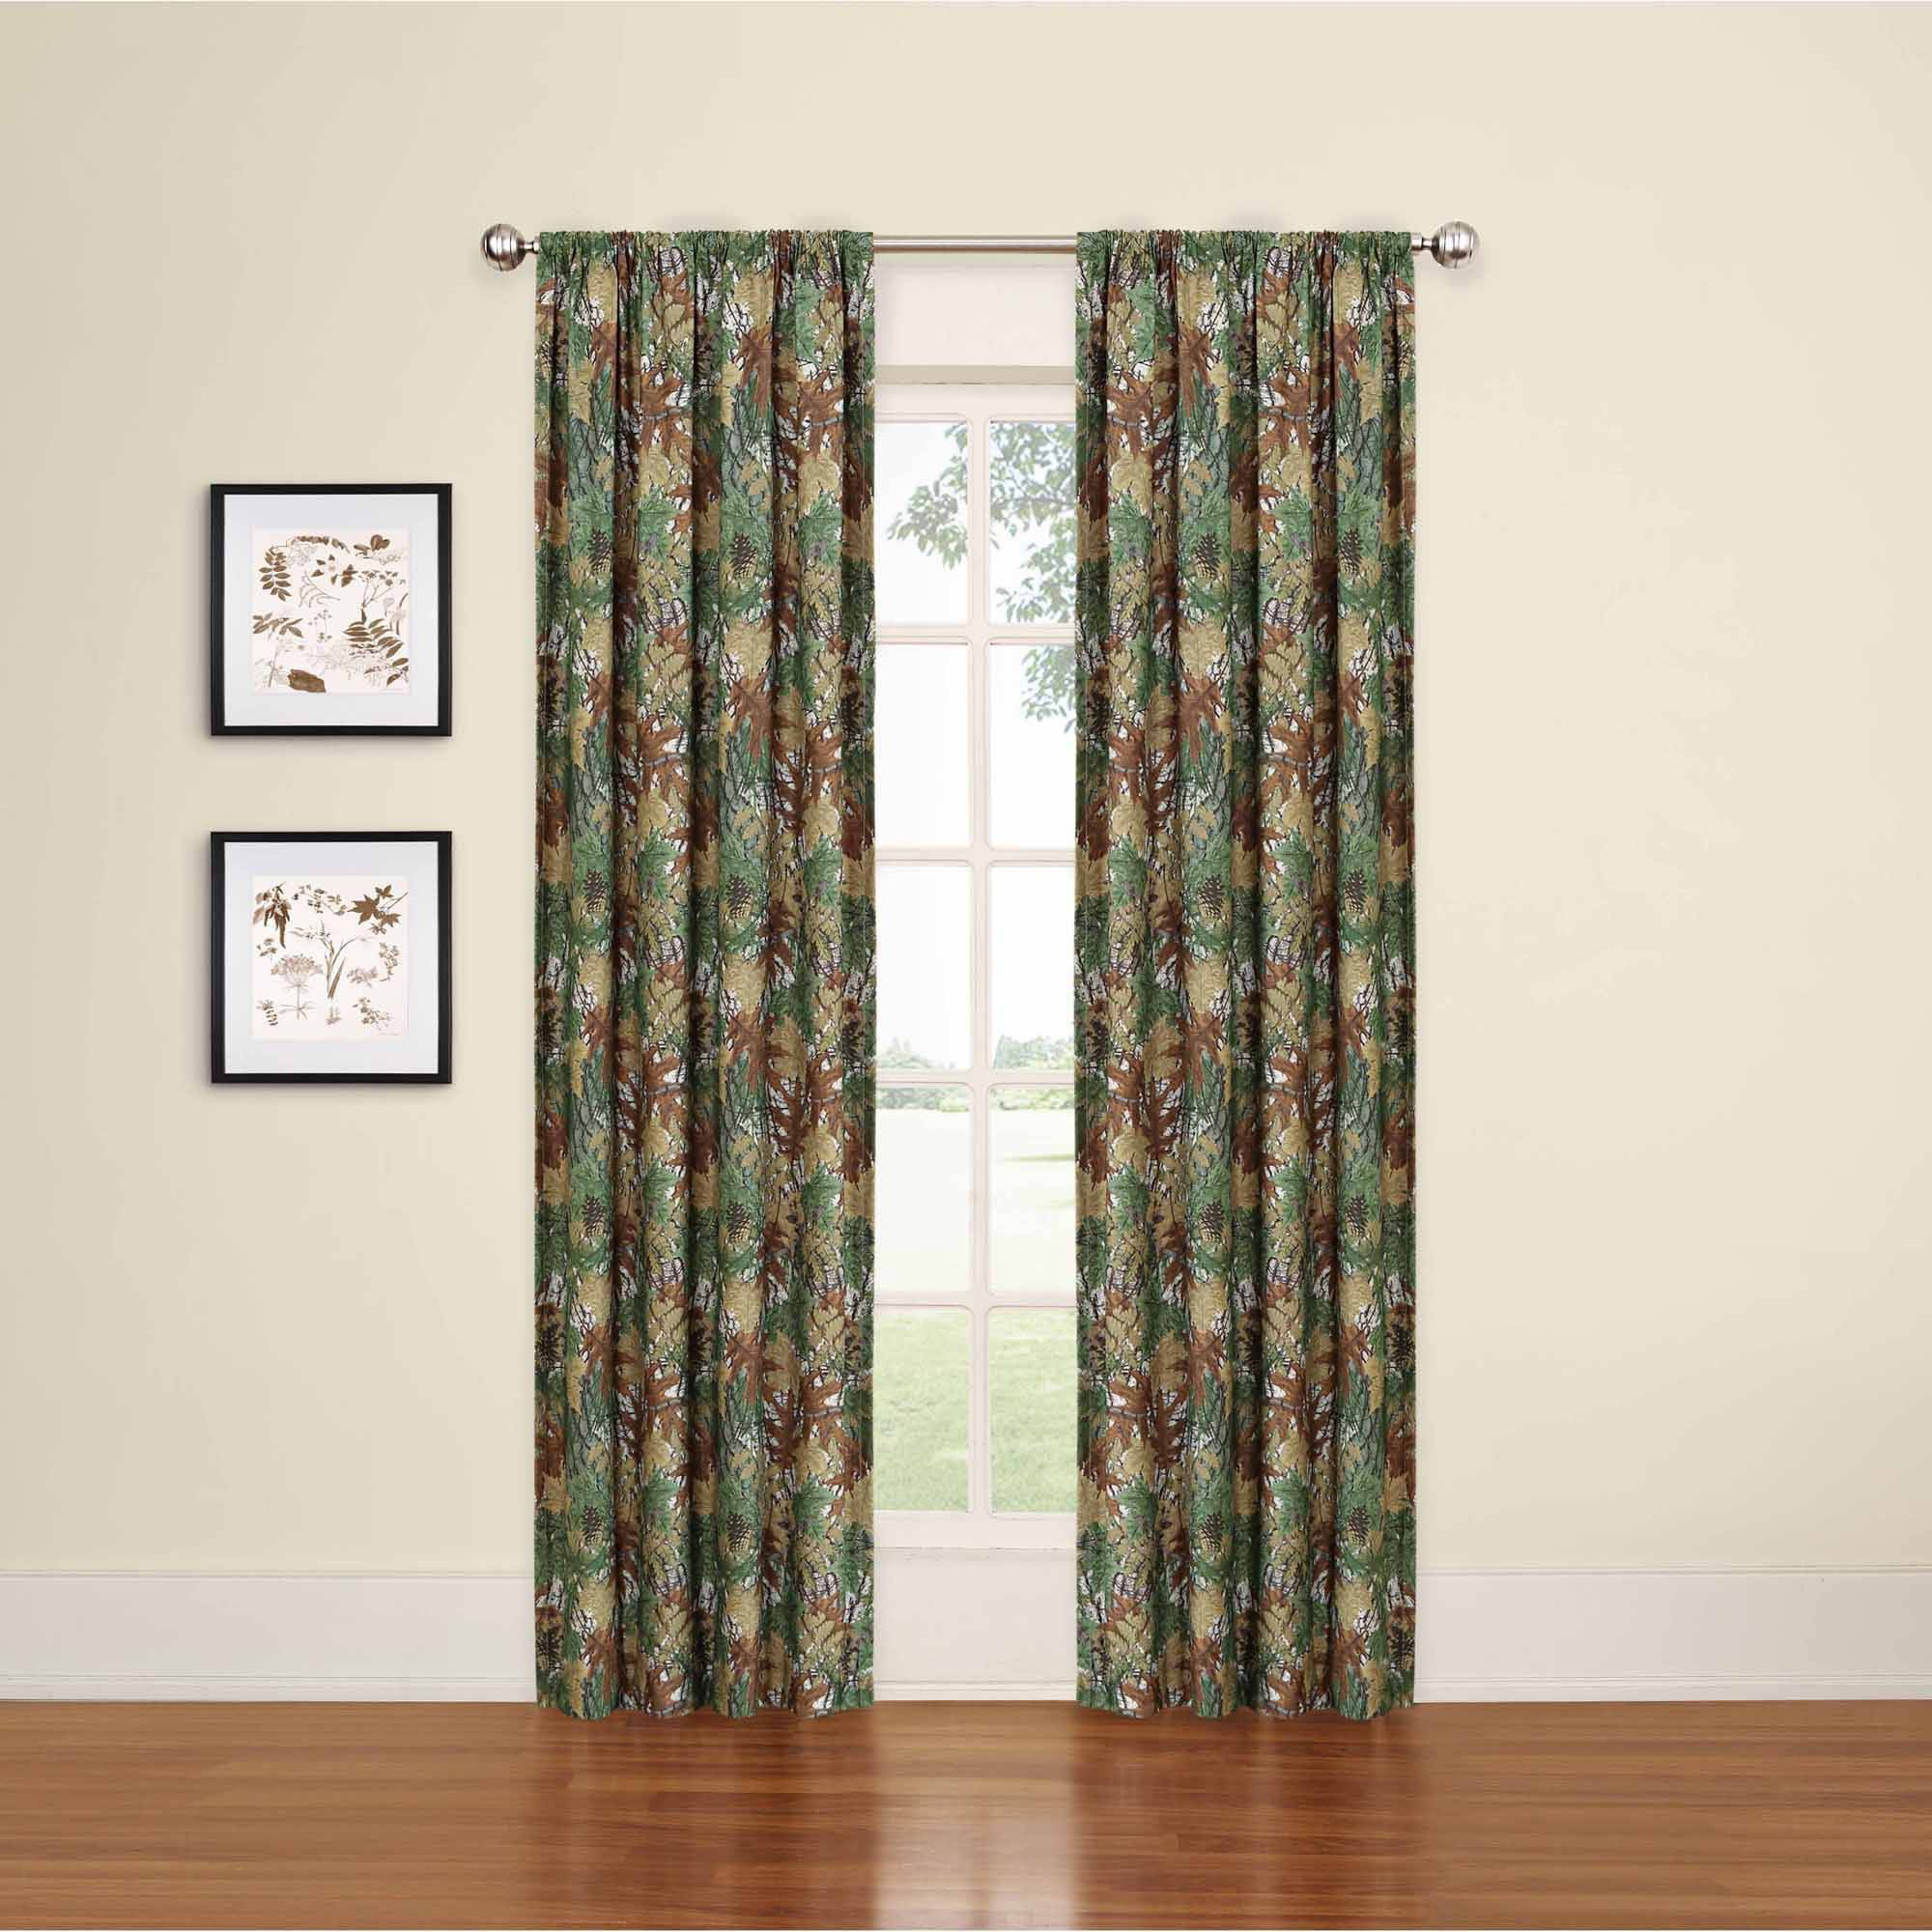 Details about Camouflage Window Curtain Panel Room Darkening Boys Bedroom  Curtains, 4\' x 84\